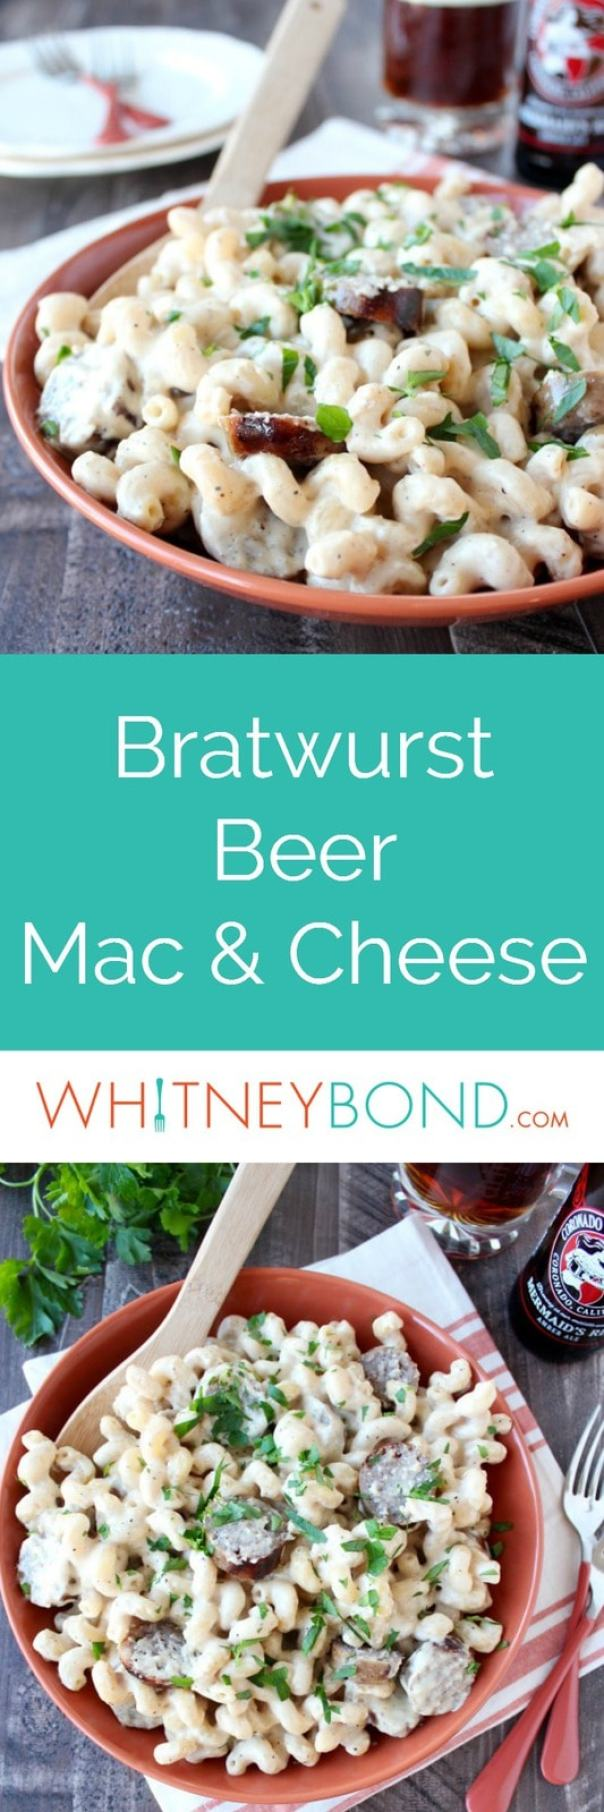 This Mac and Cheese Recipe is kicked up a notch with the addition of grilled bratwurst and amber beer, putting a fun and flavorful twist on mac and cheese!